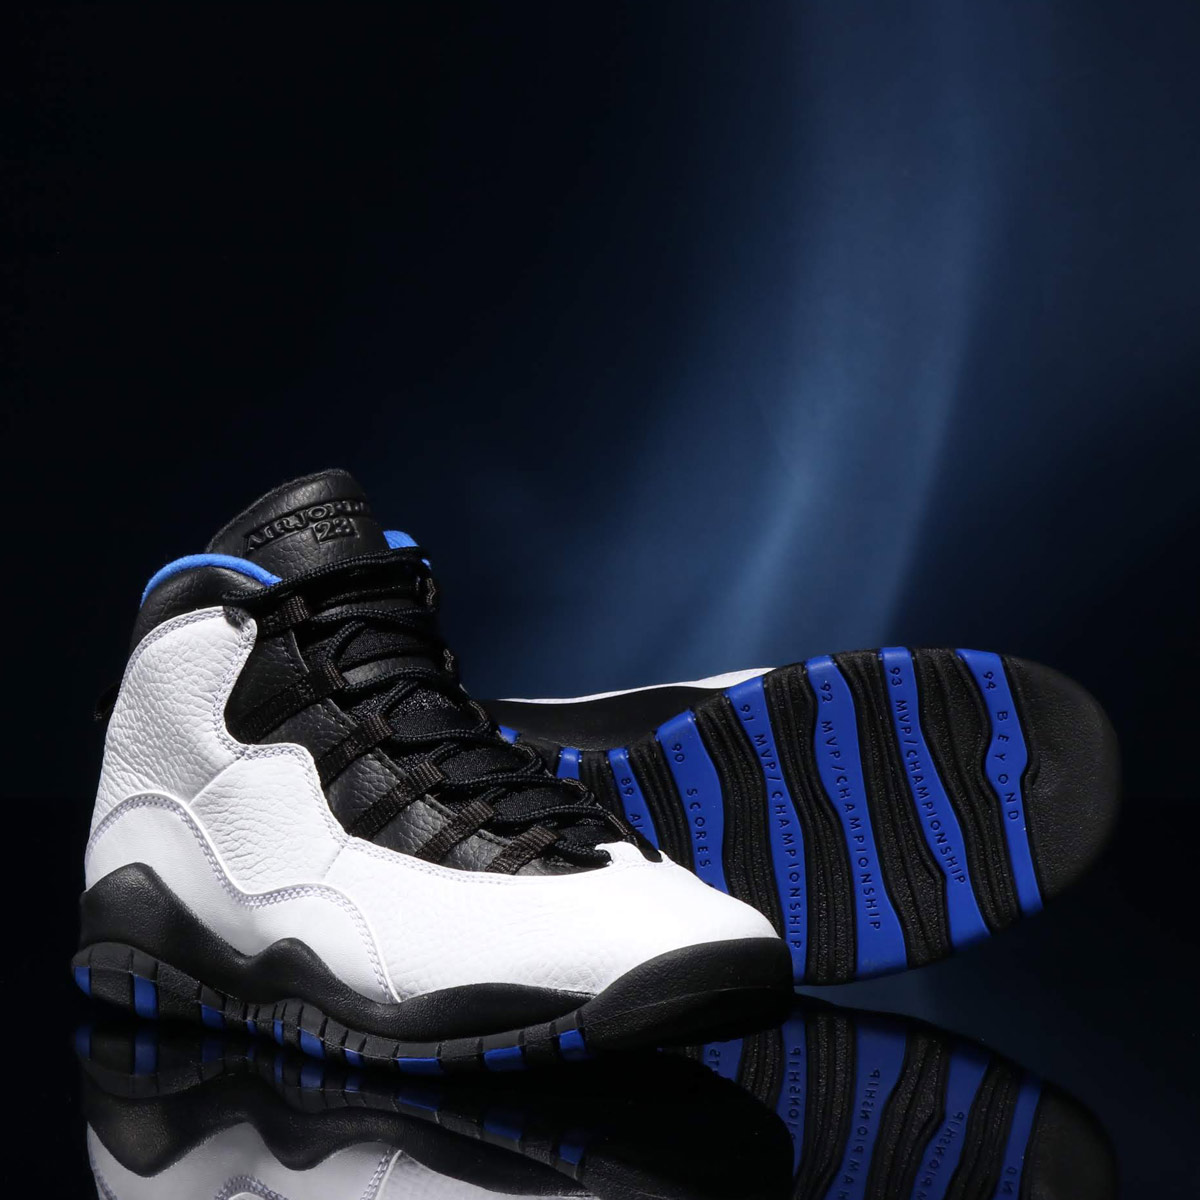 NIKE AIR JORDAN 10 RETRO (GS)ナイキ エア ジョーダン 10 レトロ GS)WHITE/BLACK-ROYAL BLUE-METALLIC SILVER【キッズ スニーカー】18HO-I